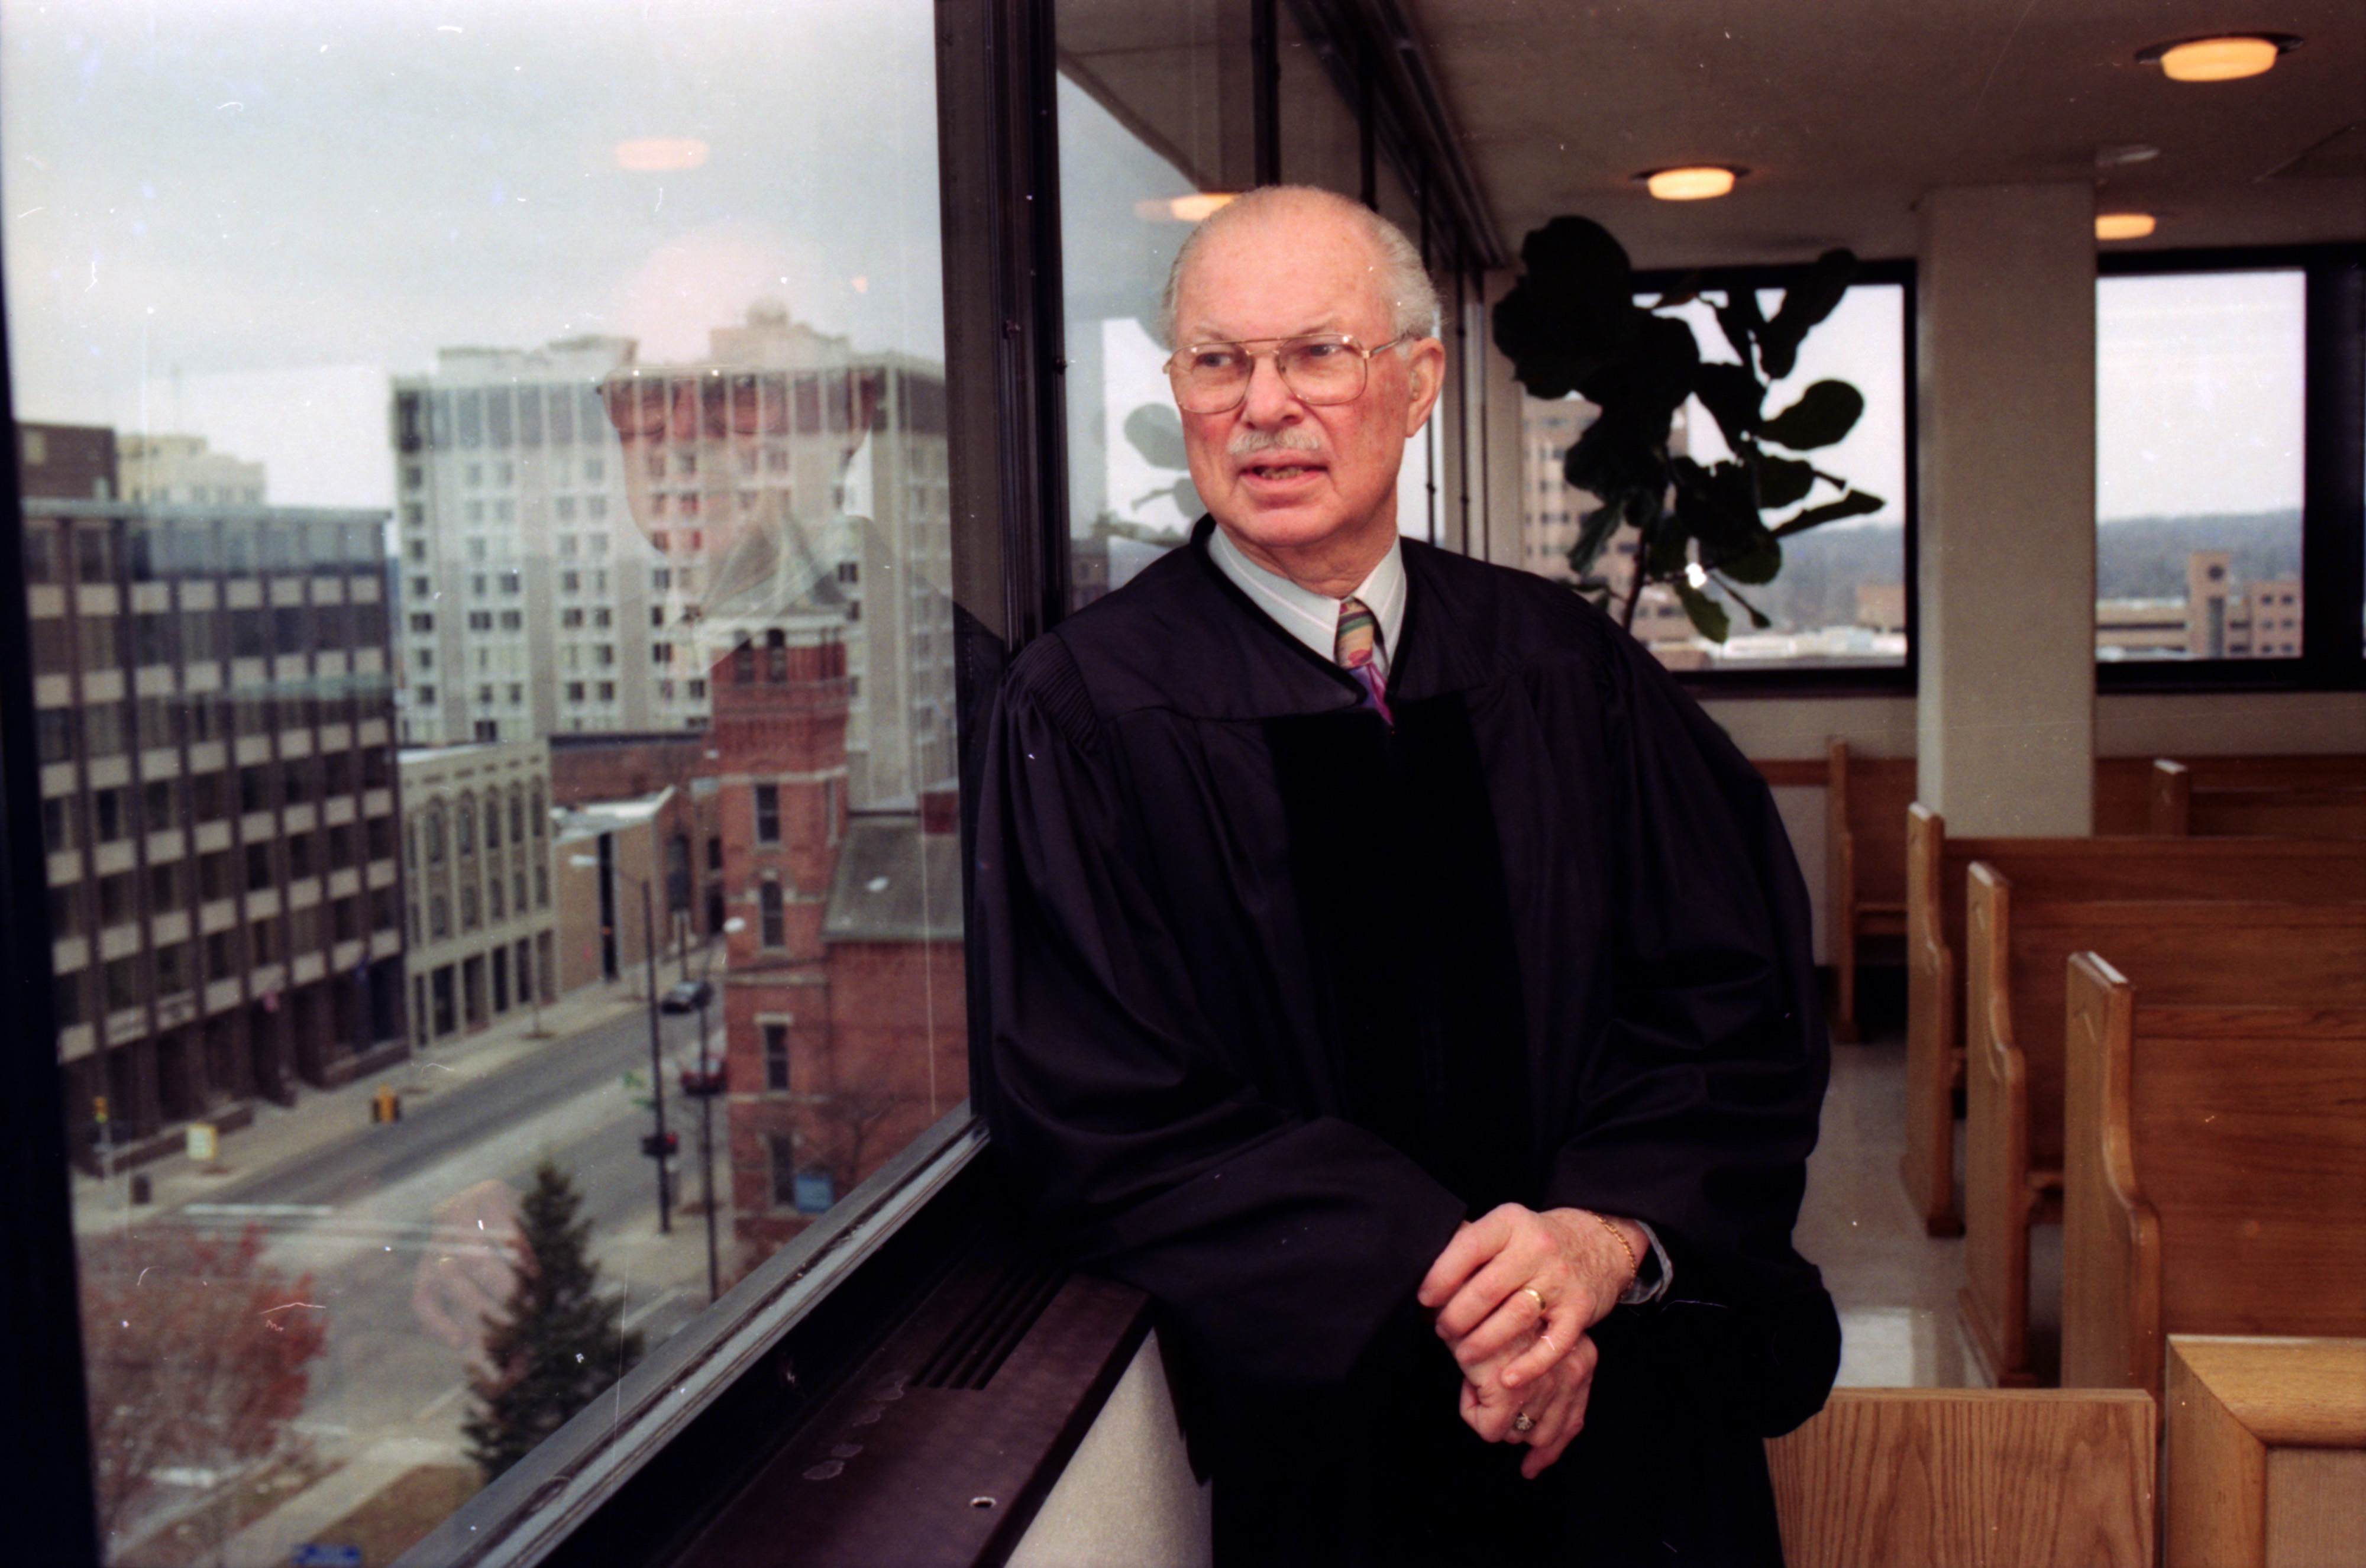 Judge S. J. Elden in Ann Arbor City Hall Courtroom, December 1992 image